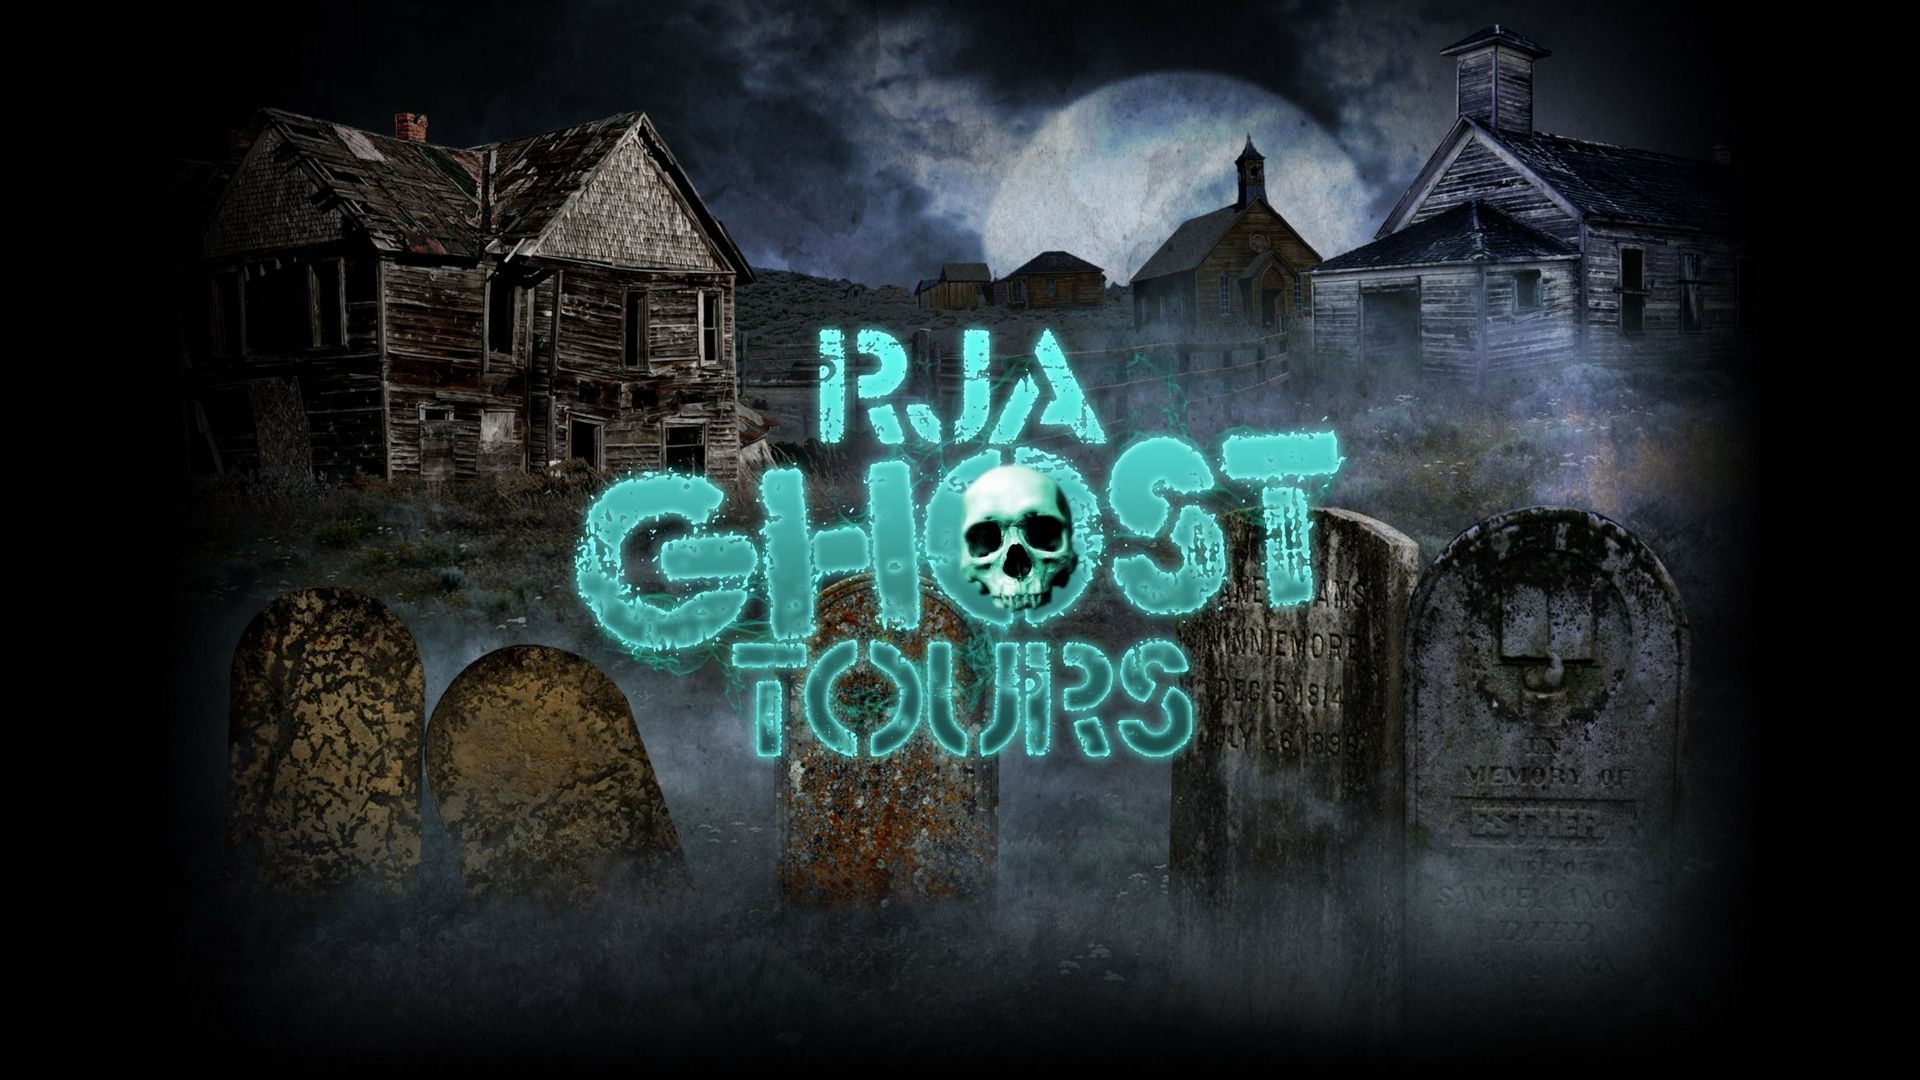 rja-ghost-tours-desktop-background